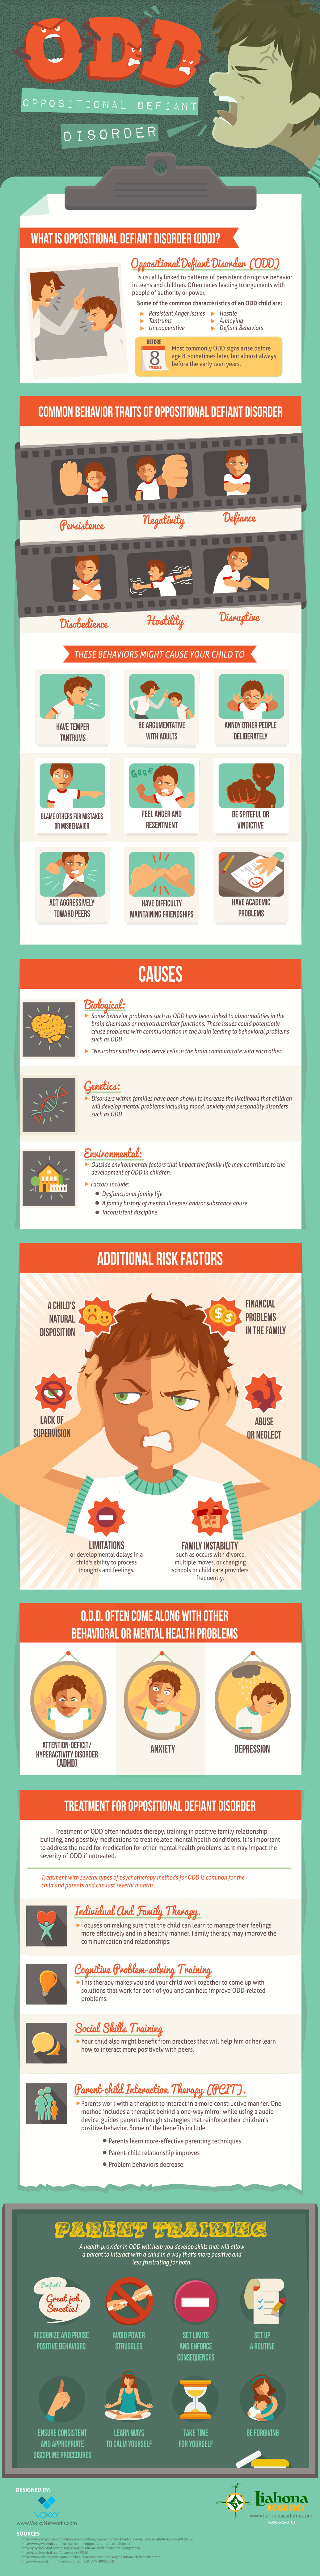 oppositional defiant disorder infographic